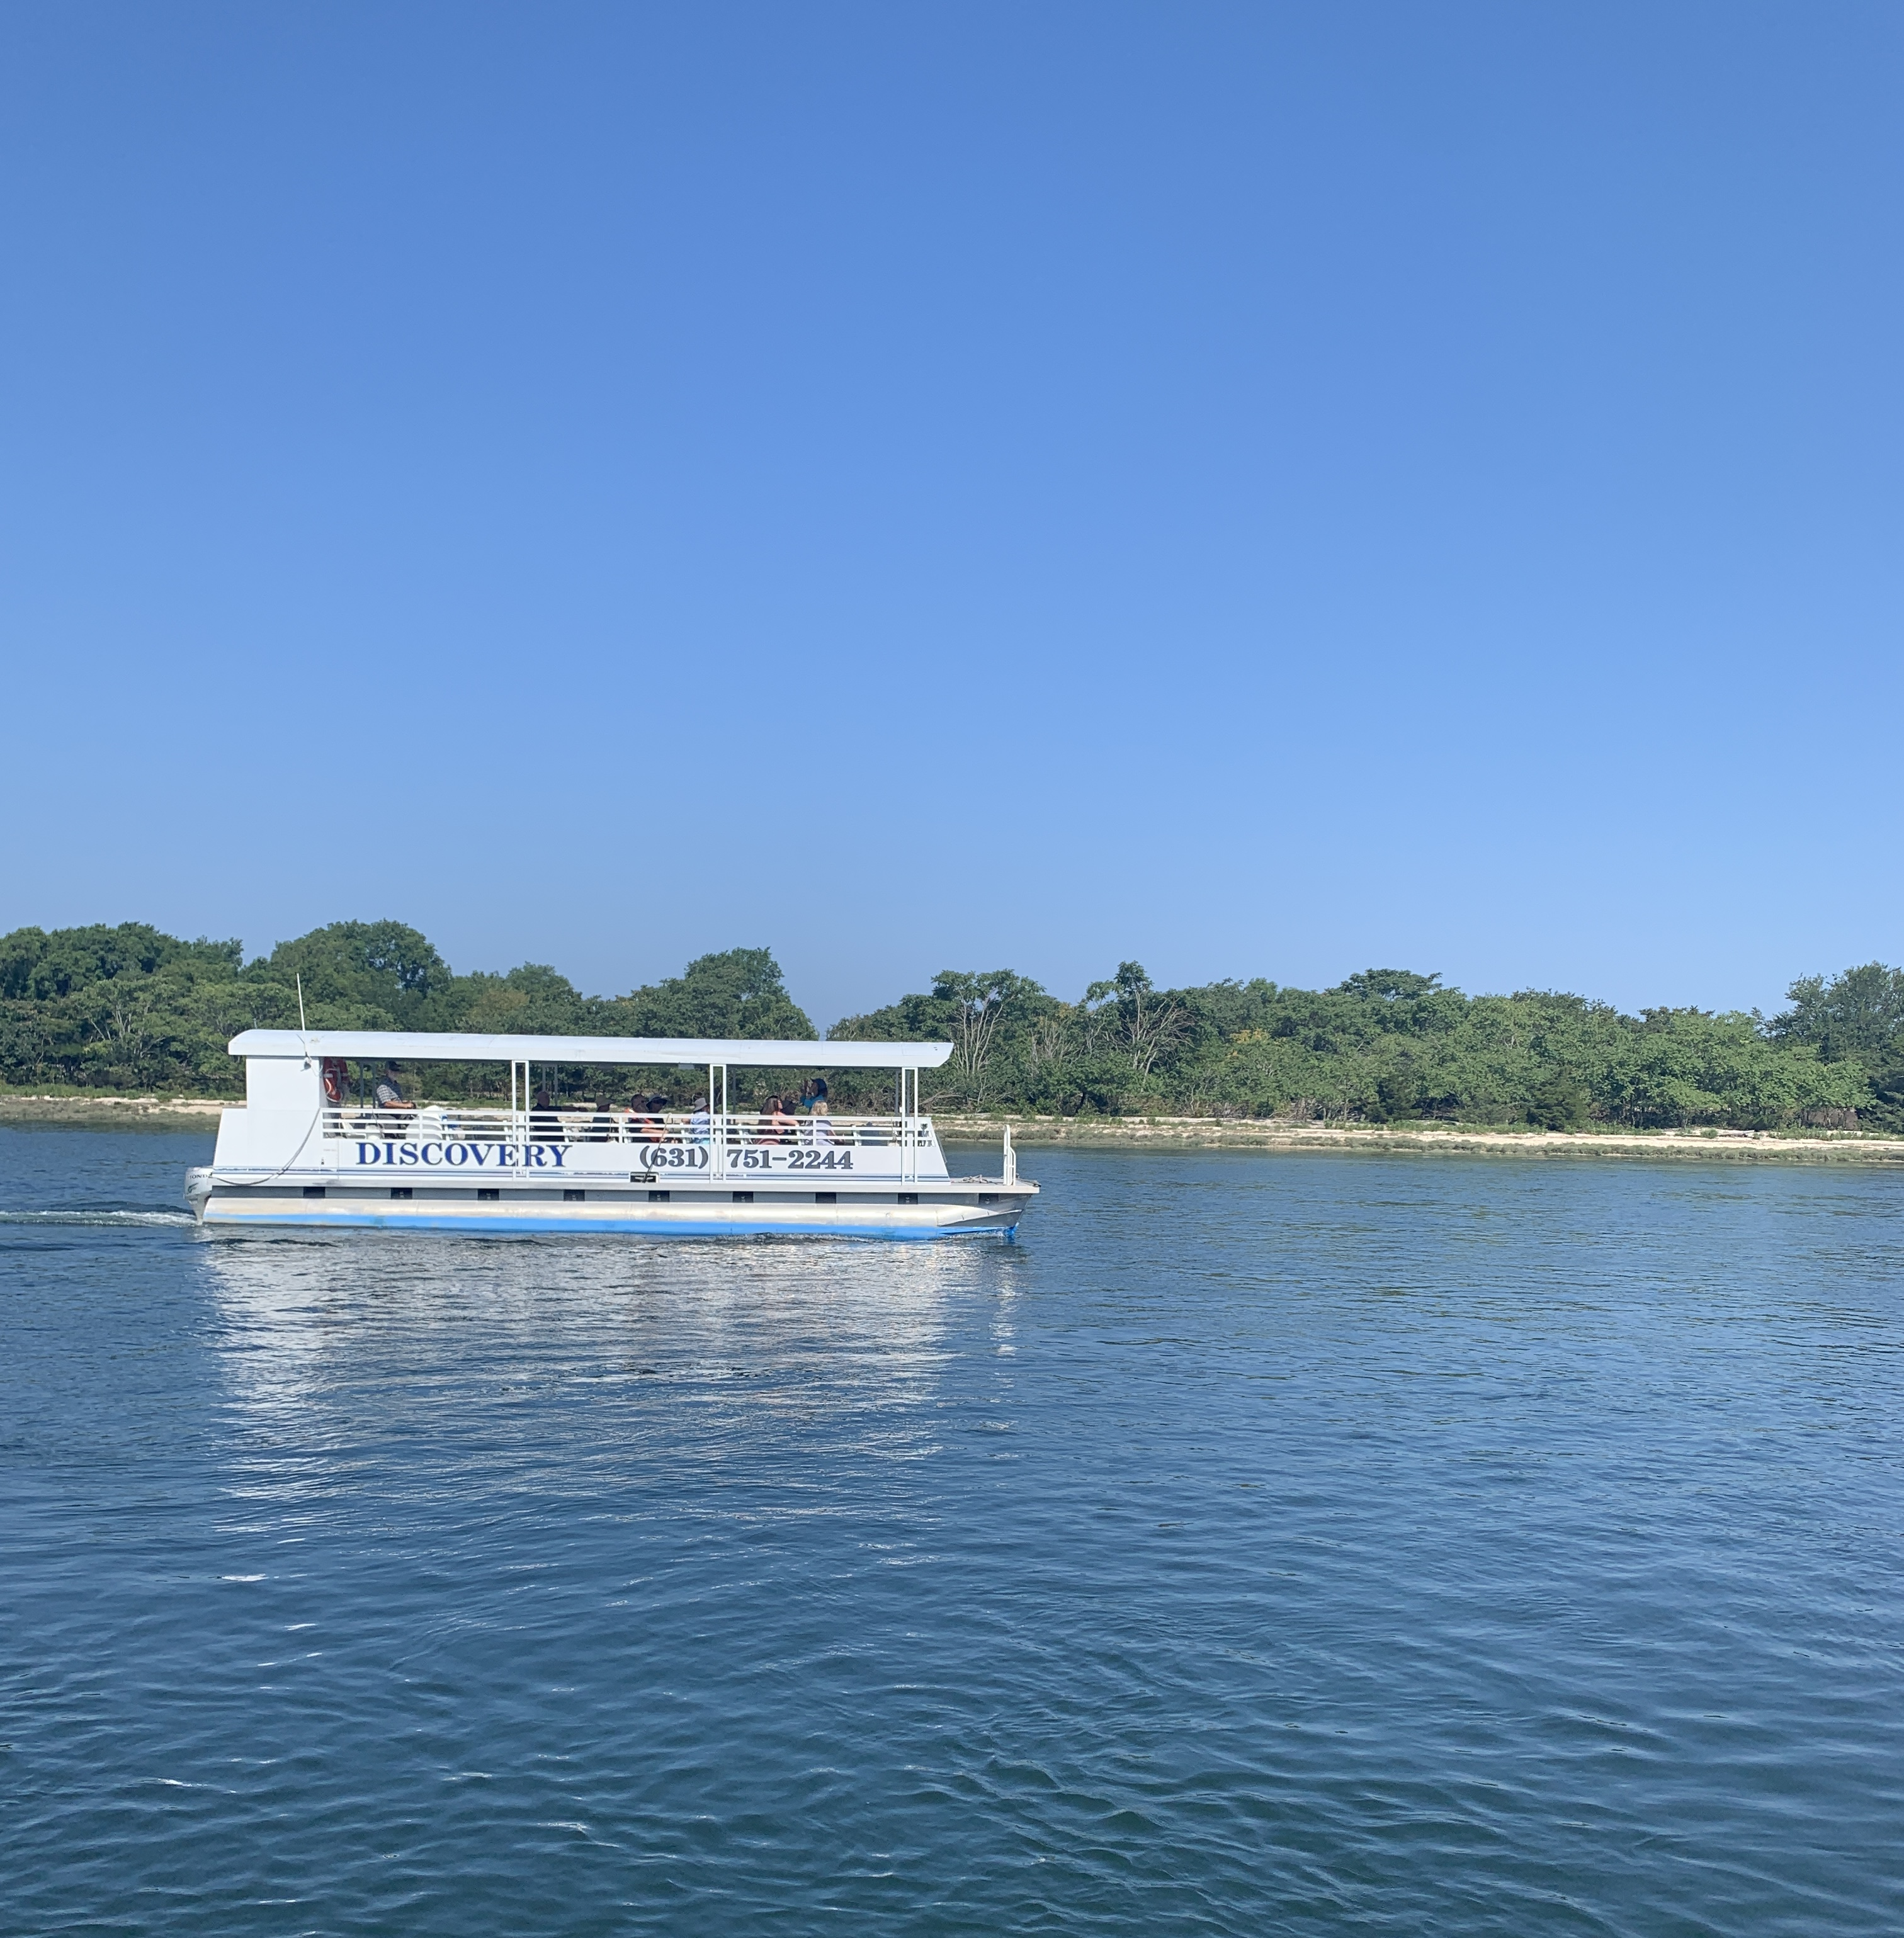 The Discovery Pontoon Cruise at Ward Melville Heritage Organization